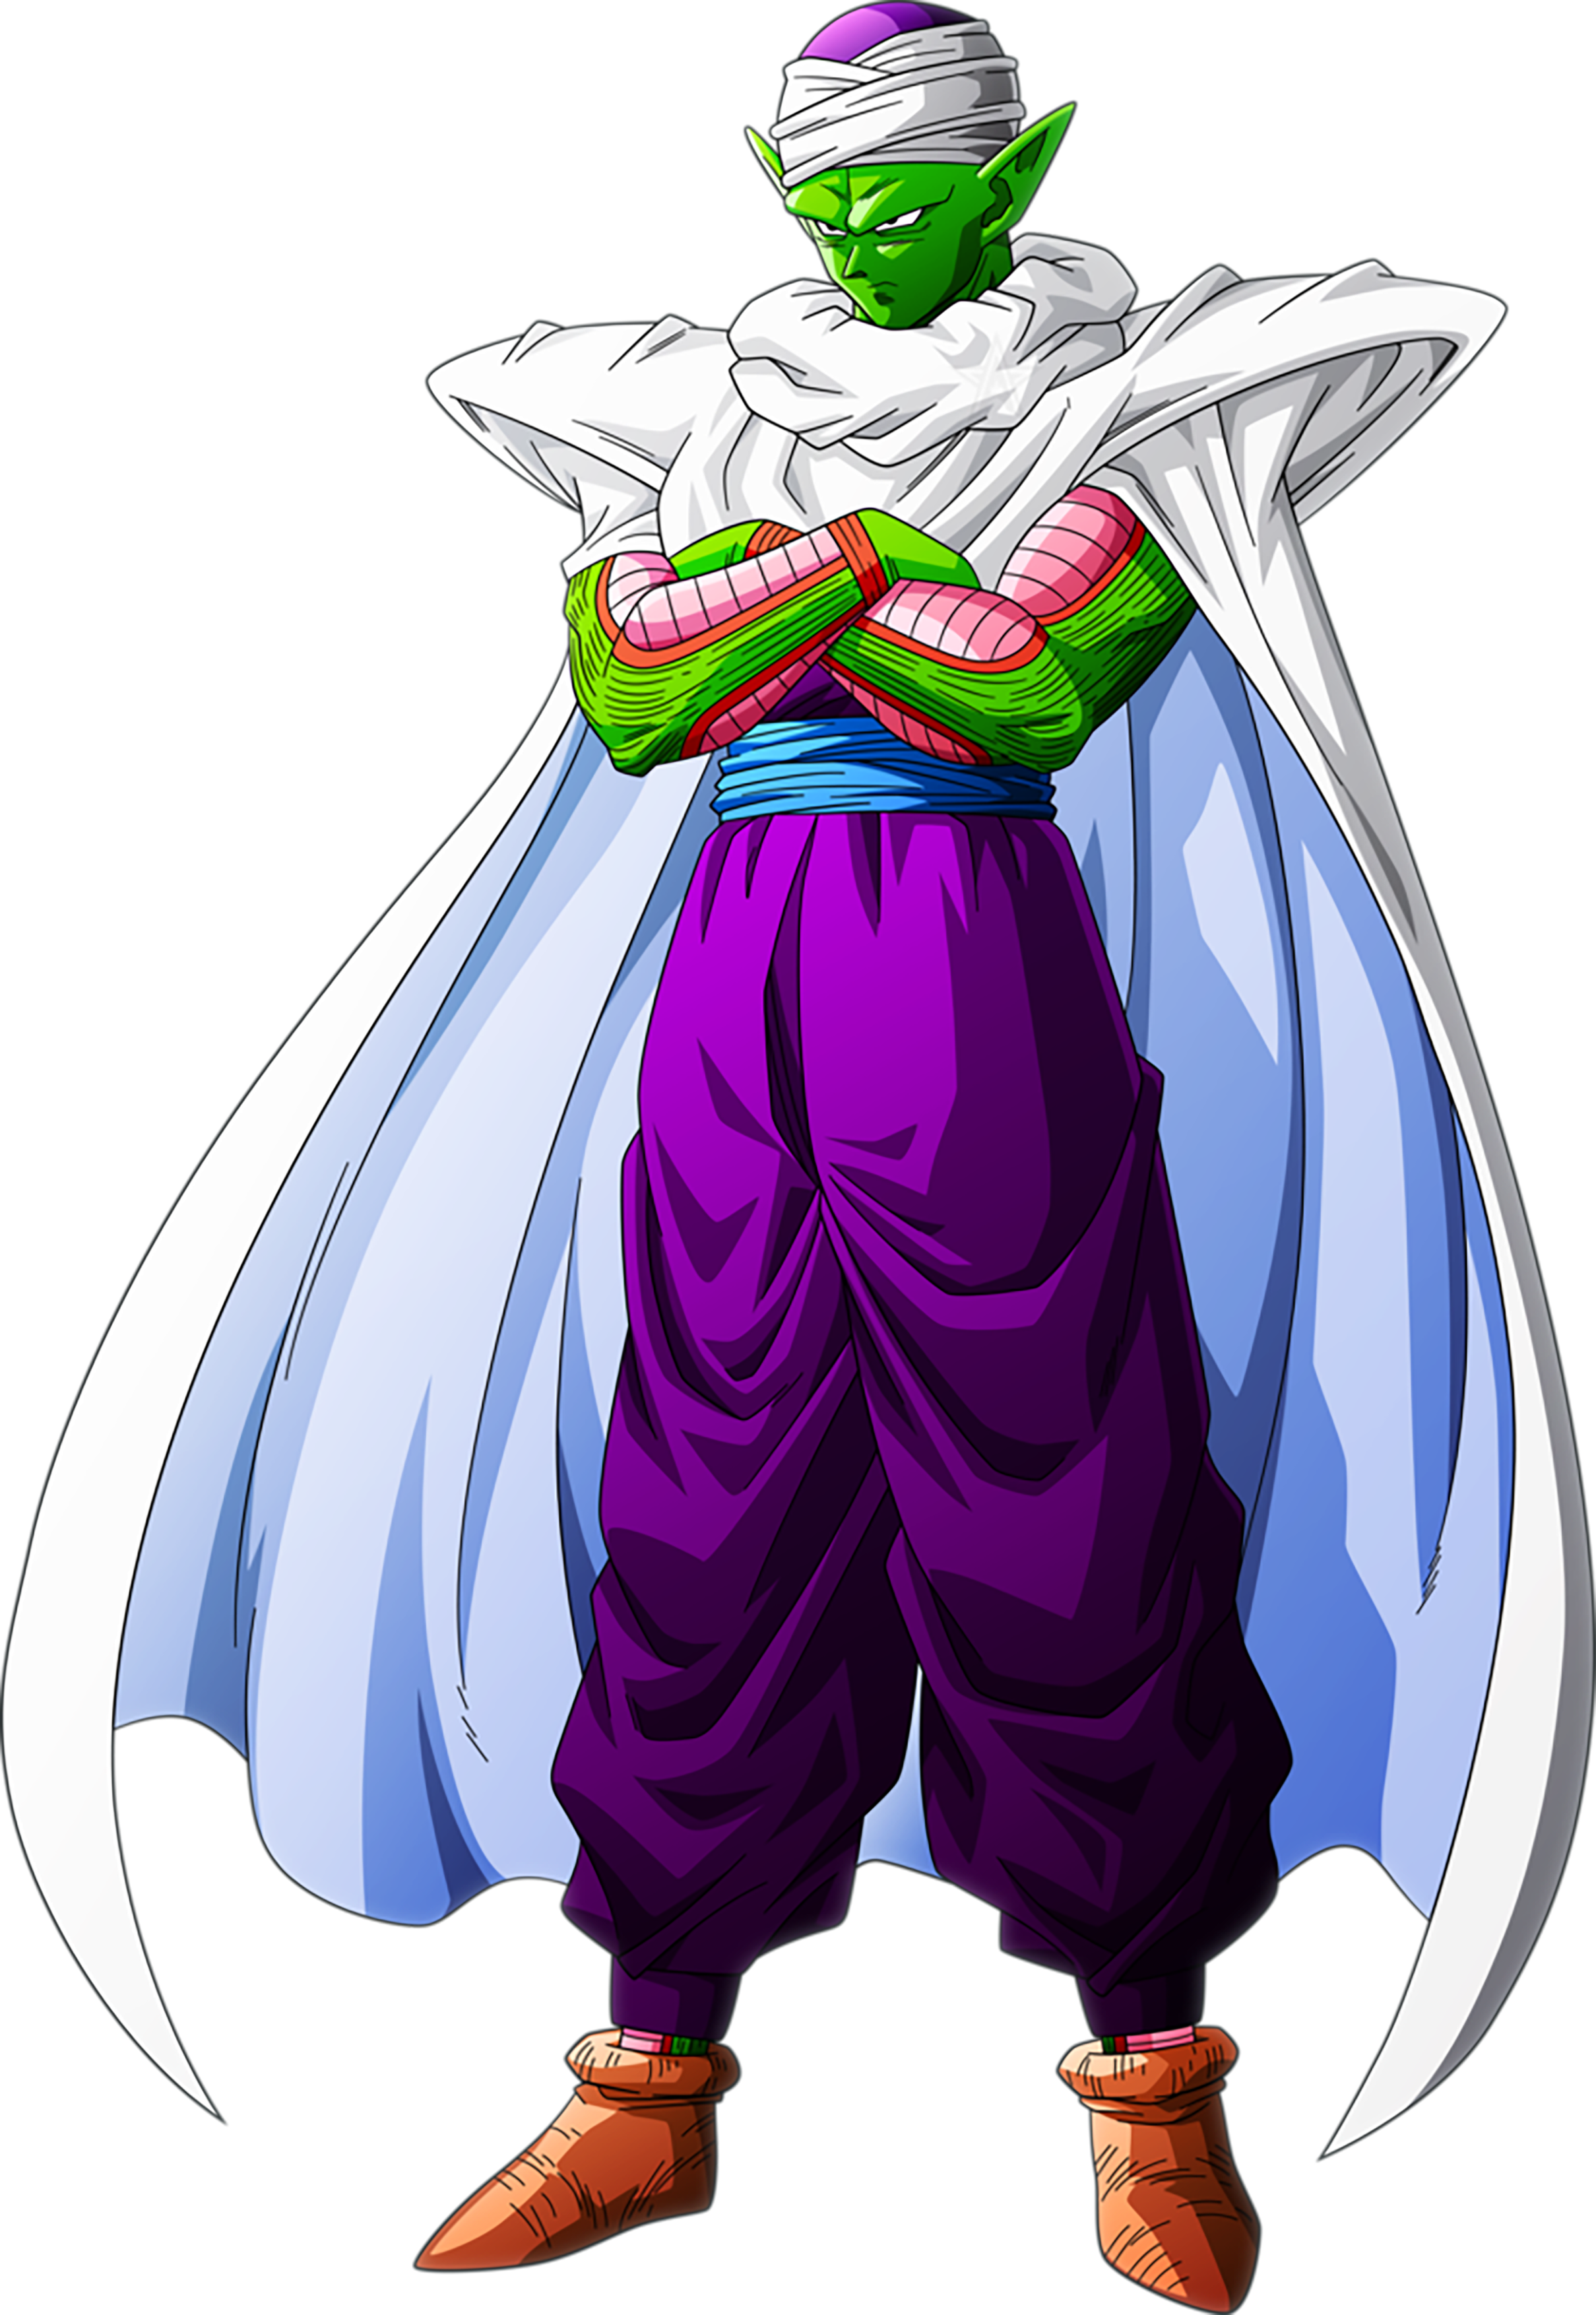 Dragon Ball Z Personnages : dragon, personnages, Sticker, 'Piccolo, Lilzer99, Dessin, Personnages, Dragon, Ball,, Personnage